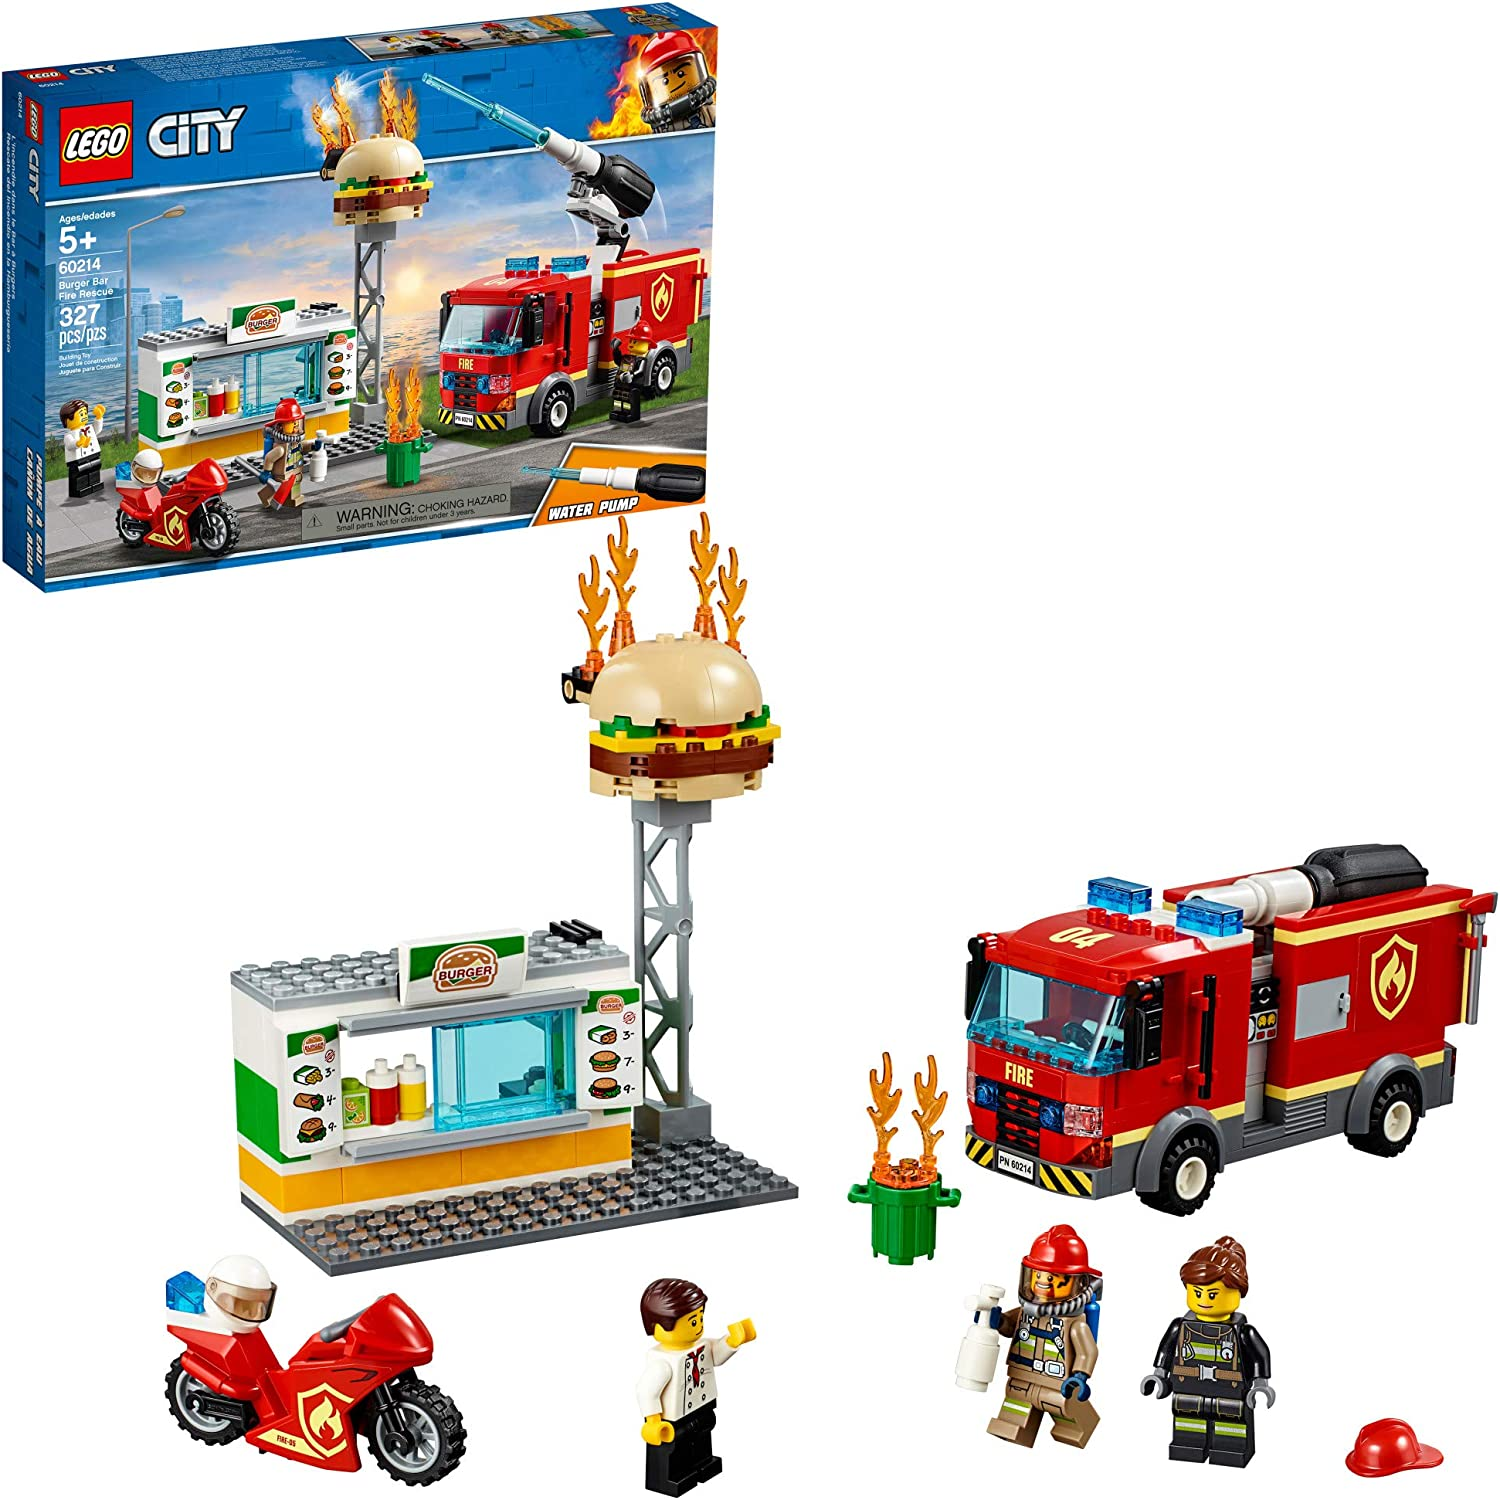 FAST SHIP !!! LEGO City Fire Station 60215